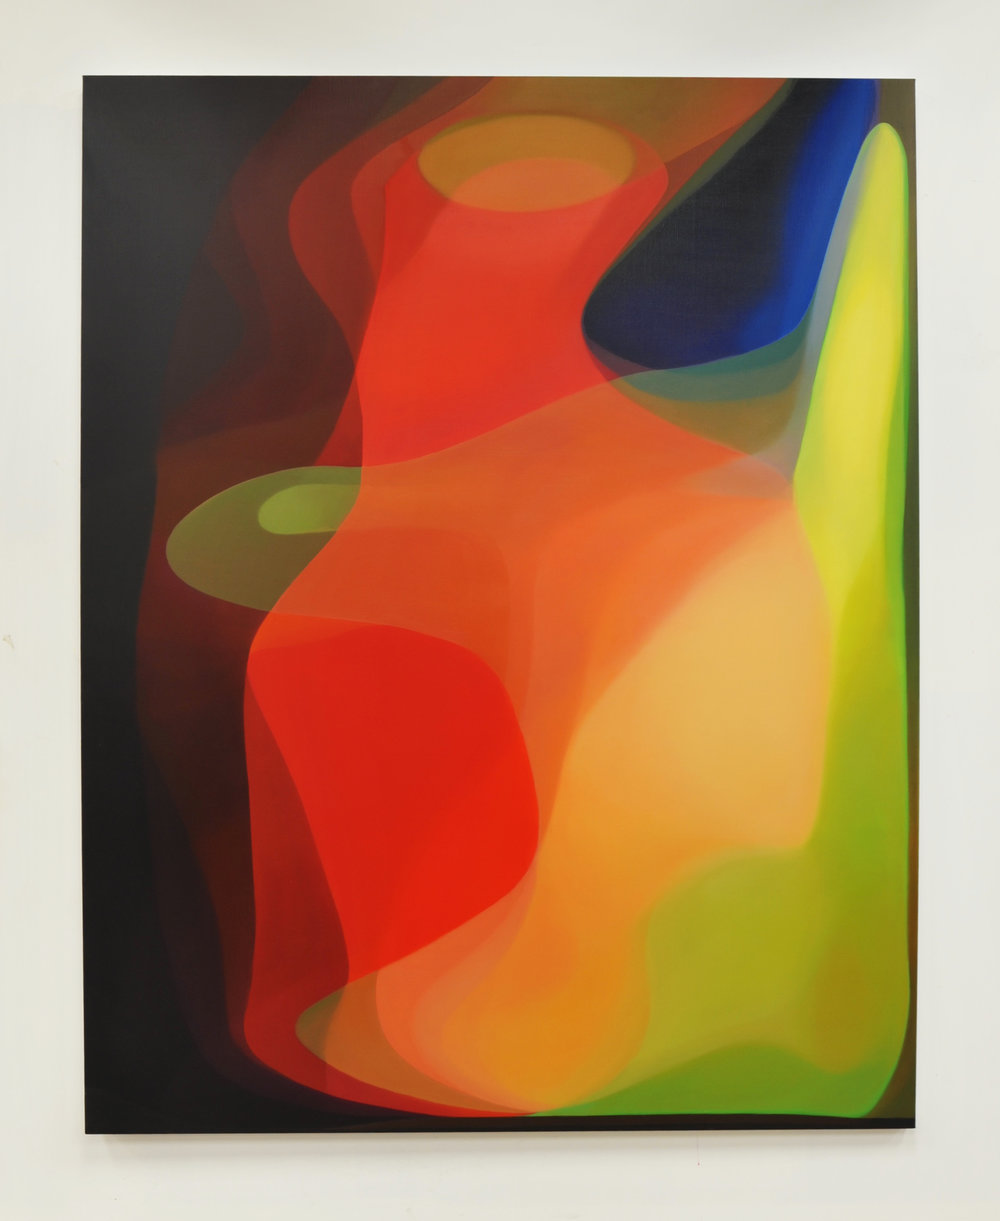 JOHN YOUNG   Spectrum III  2016 Oil on canvas 190 x 150 cm